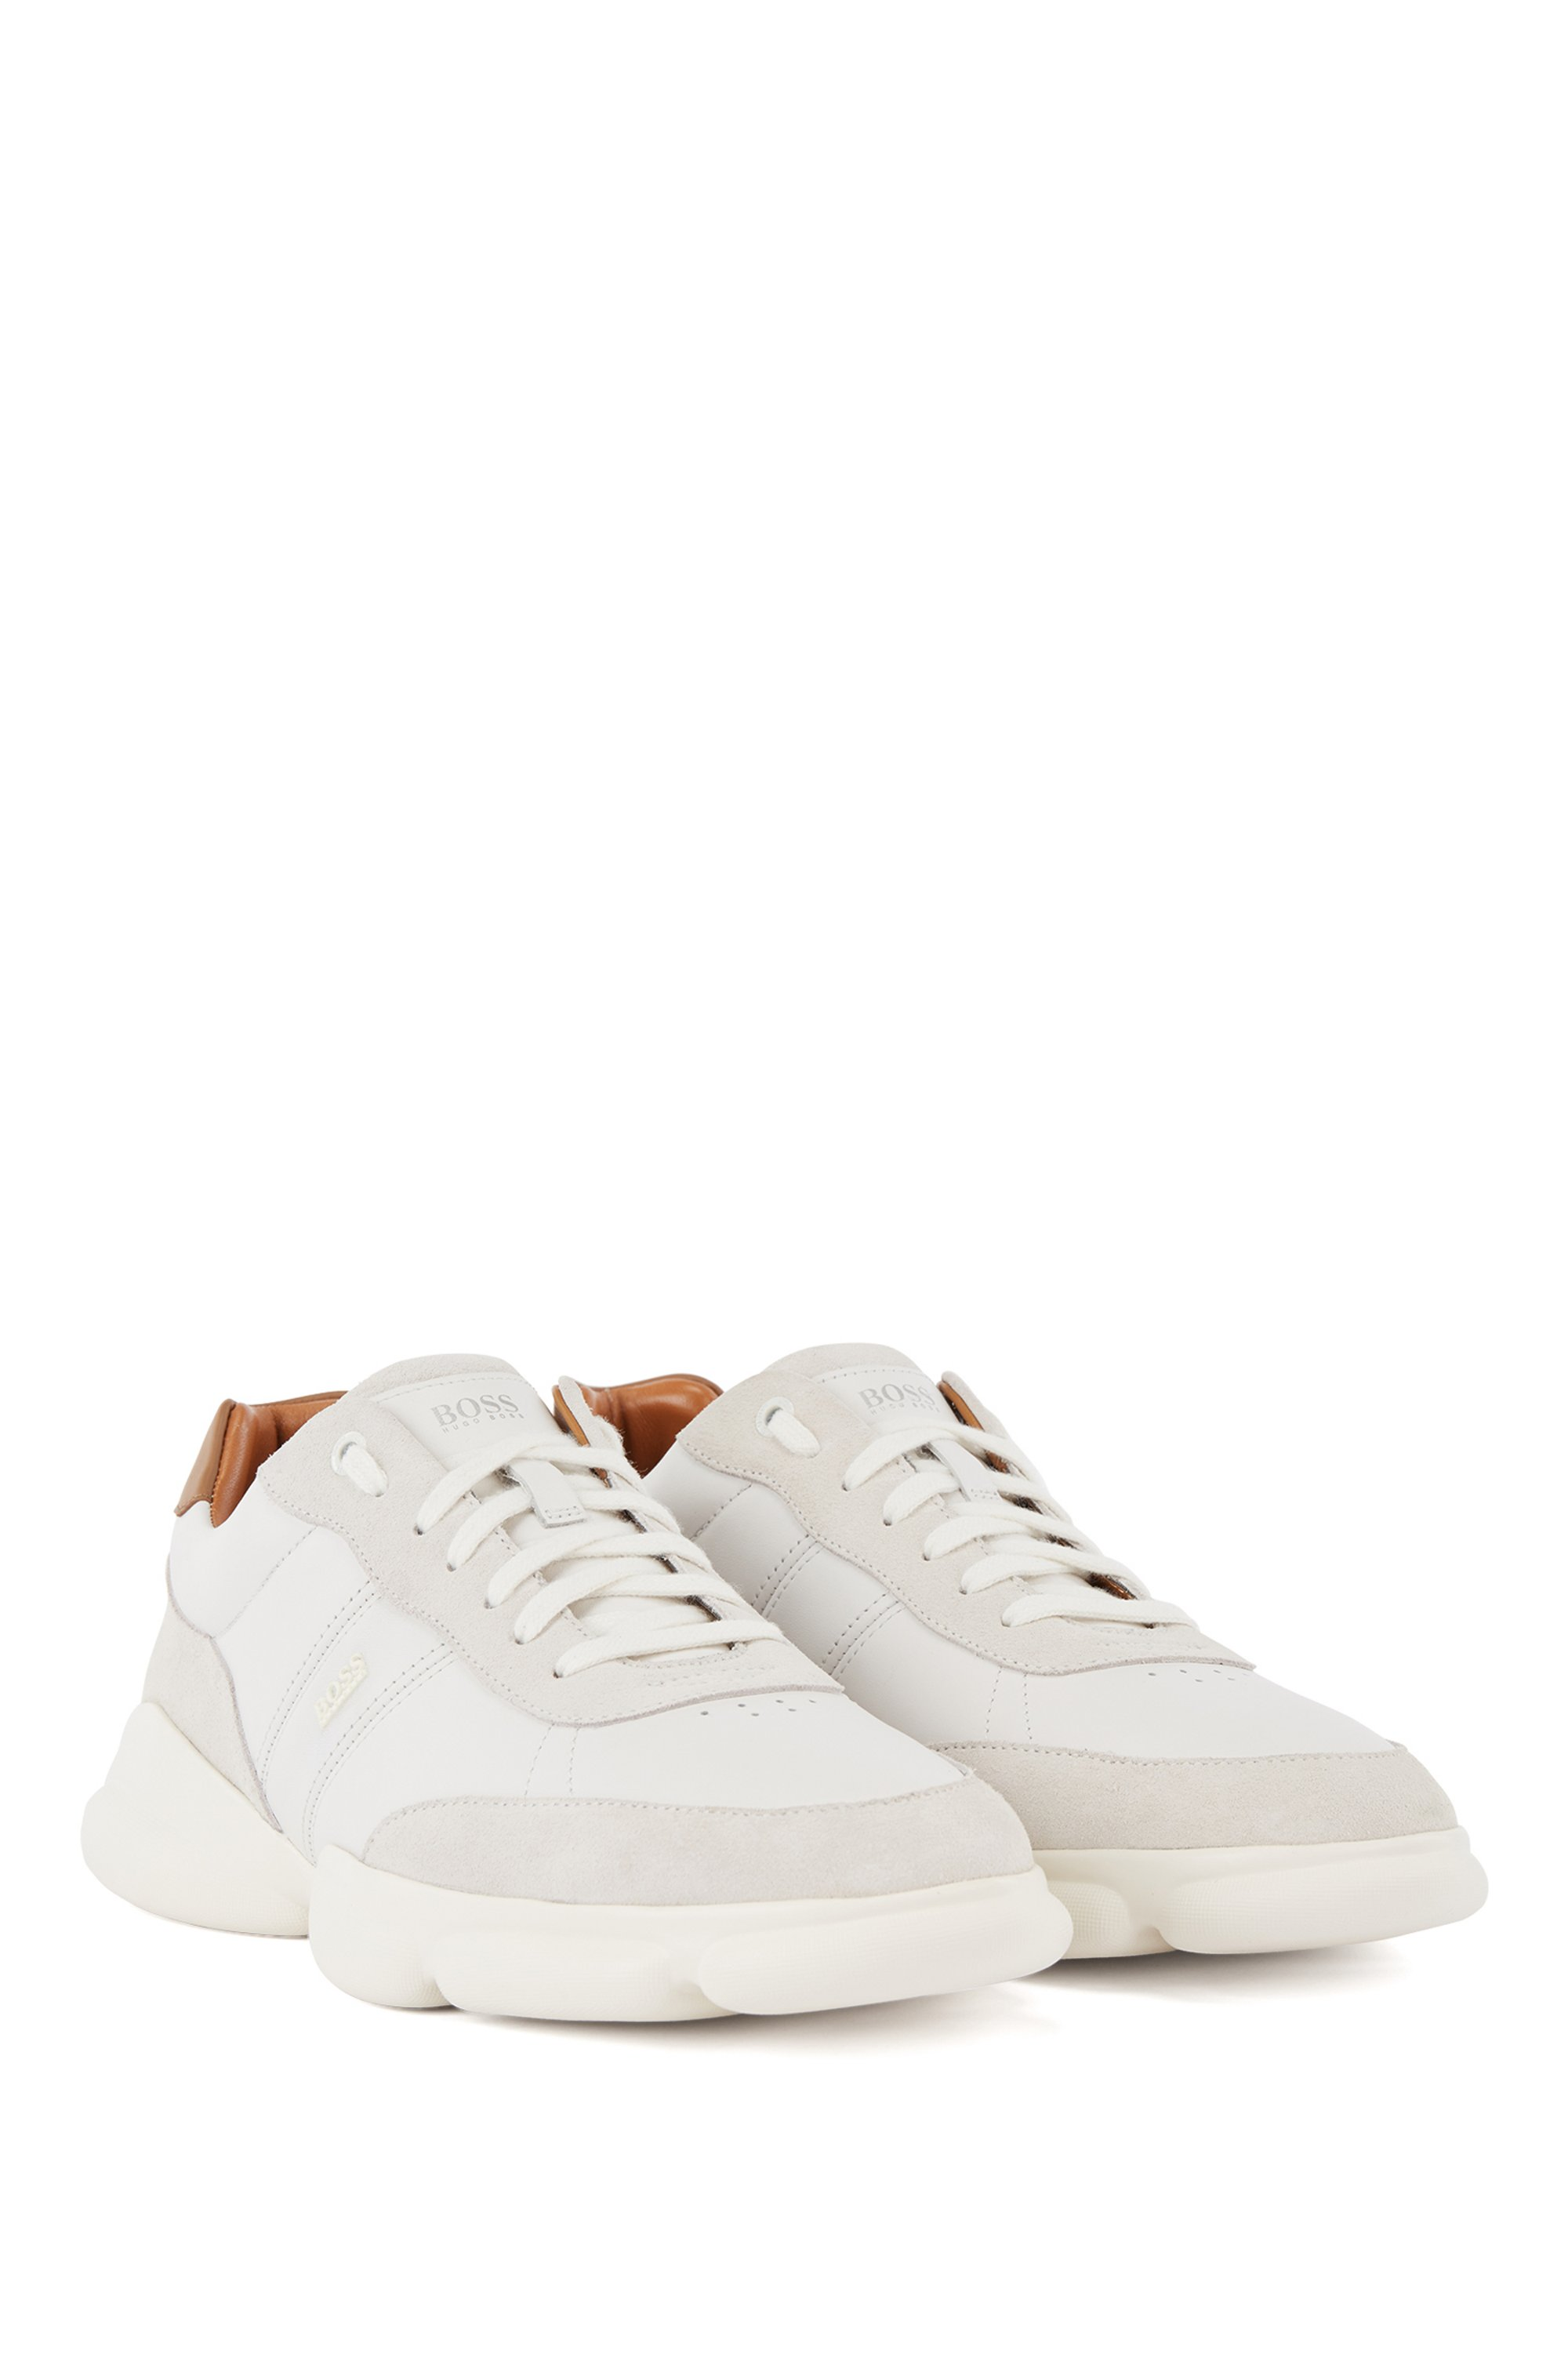 Running-inspired trainers in nappa leather and suede